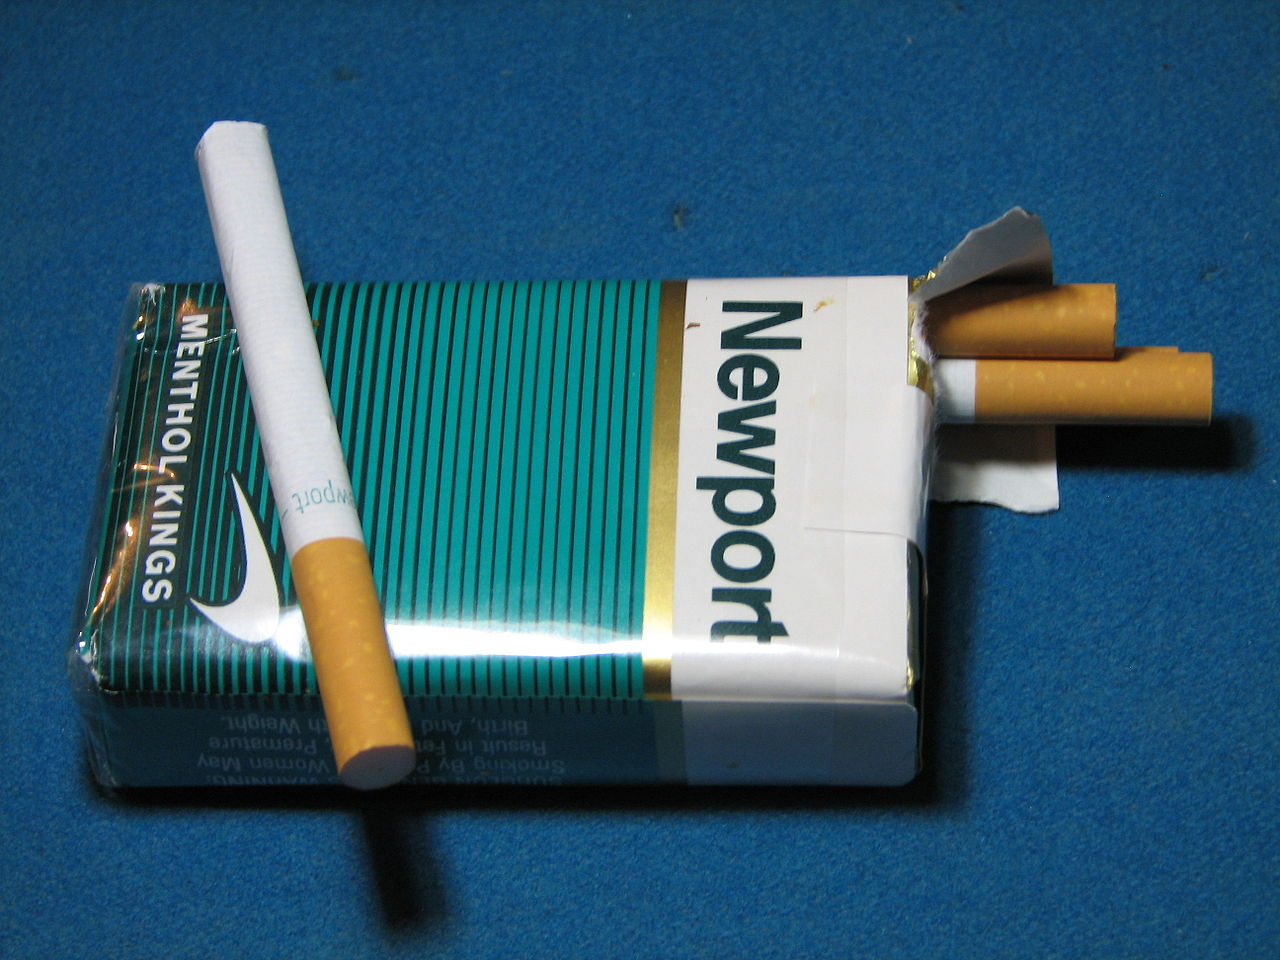 Where to buy duty free cigarettes Marlboro in New York